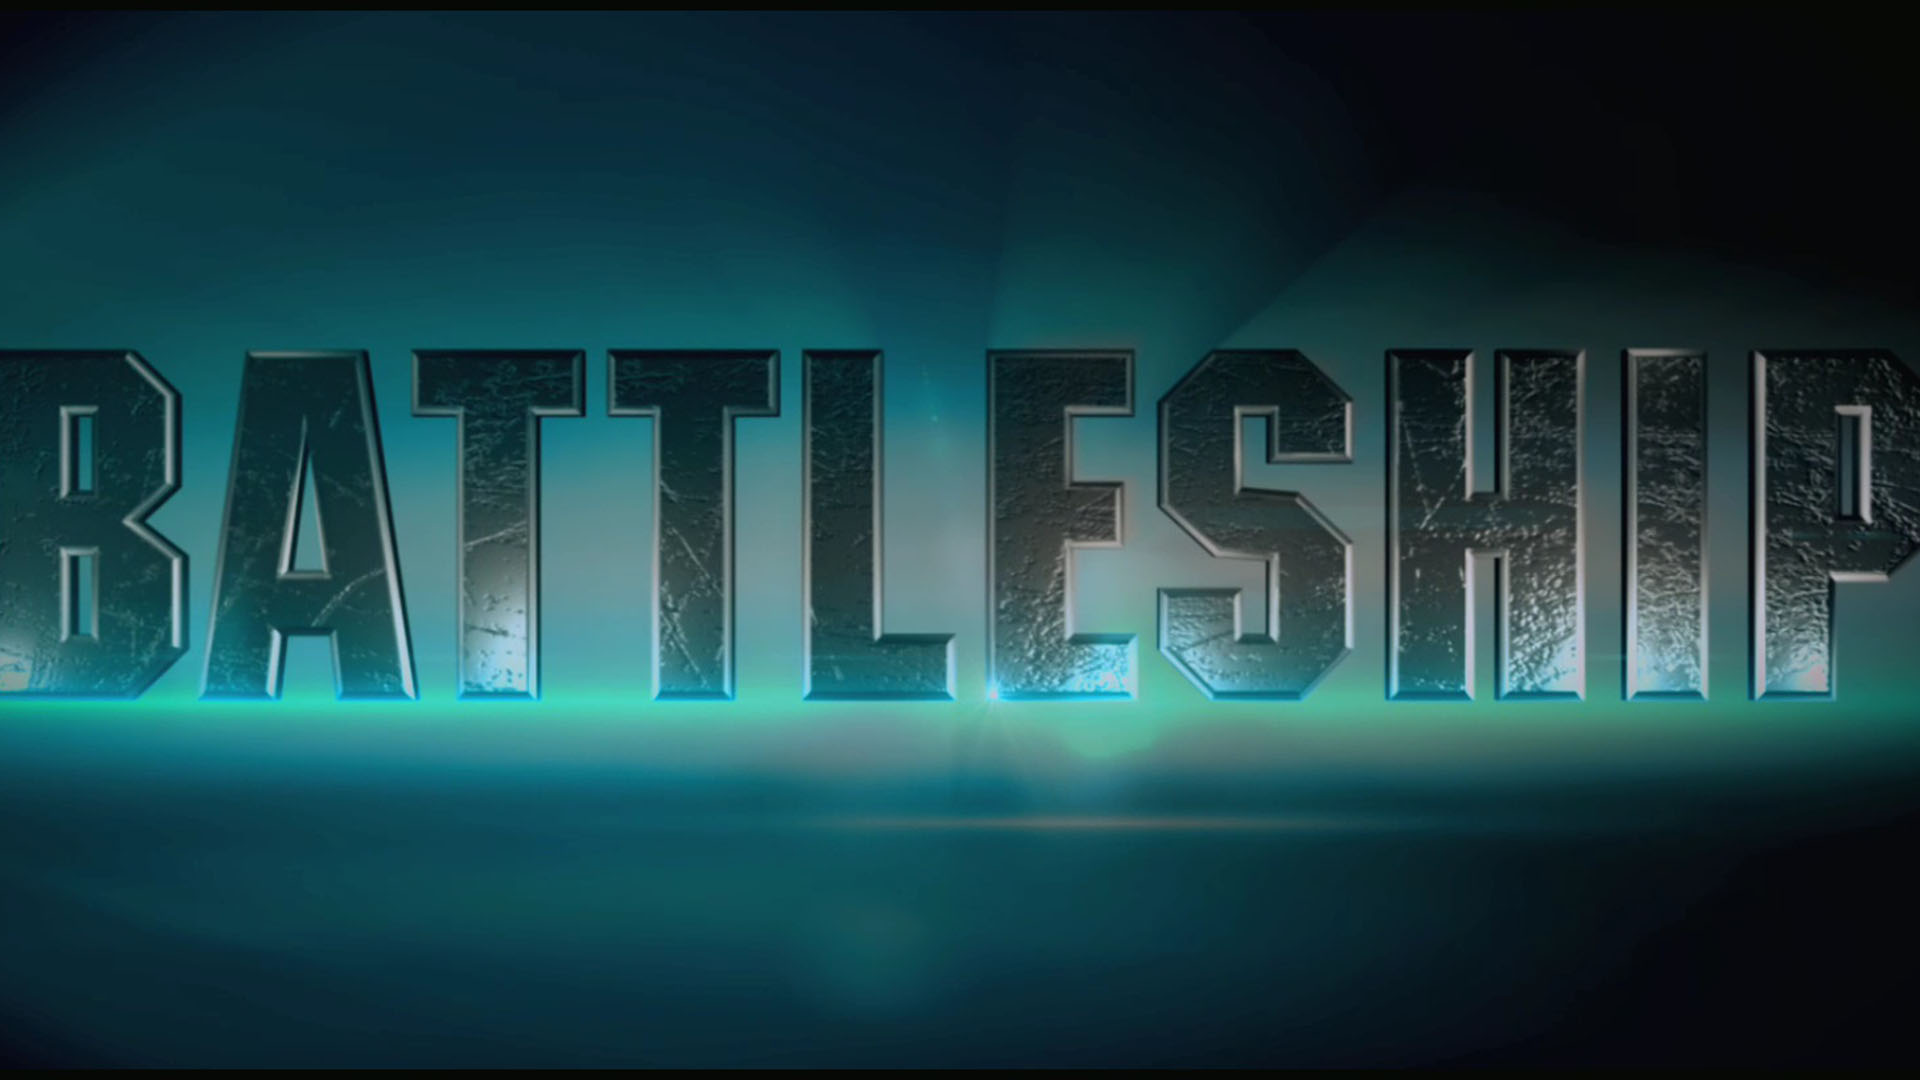 Battleship wallpaper 4